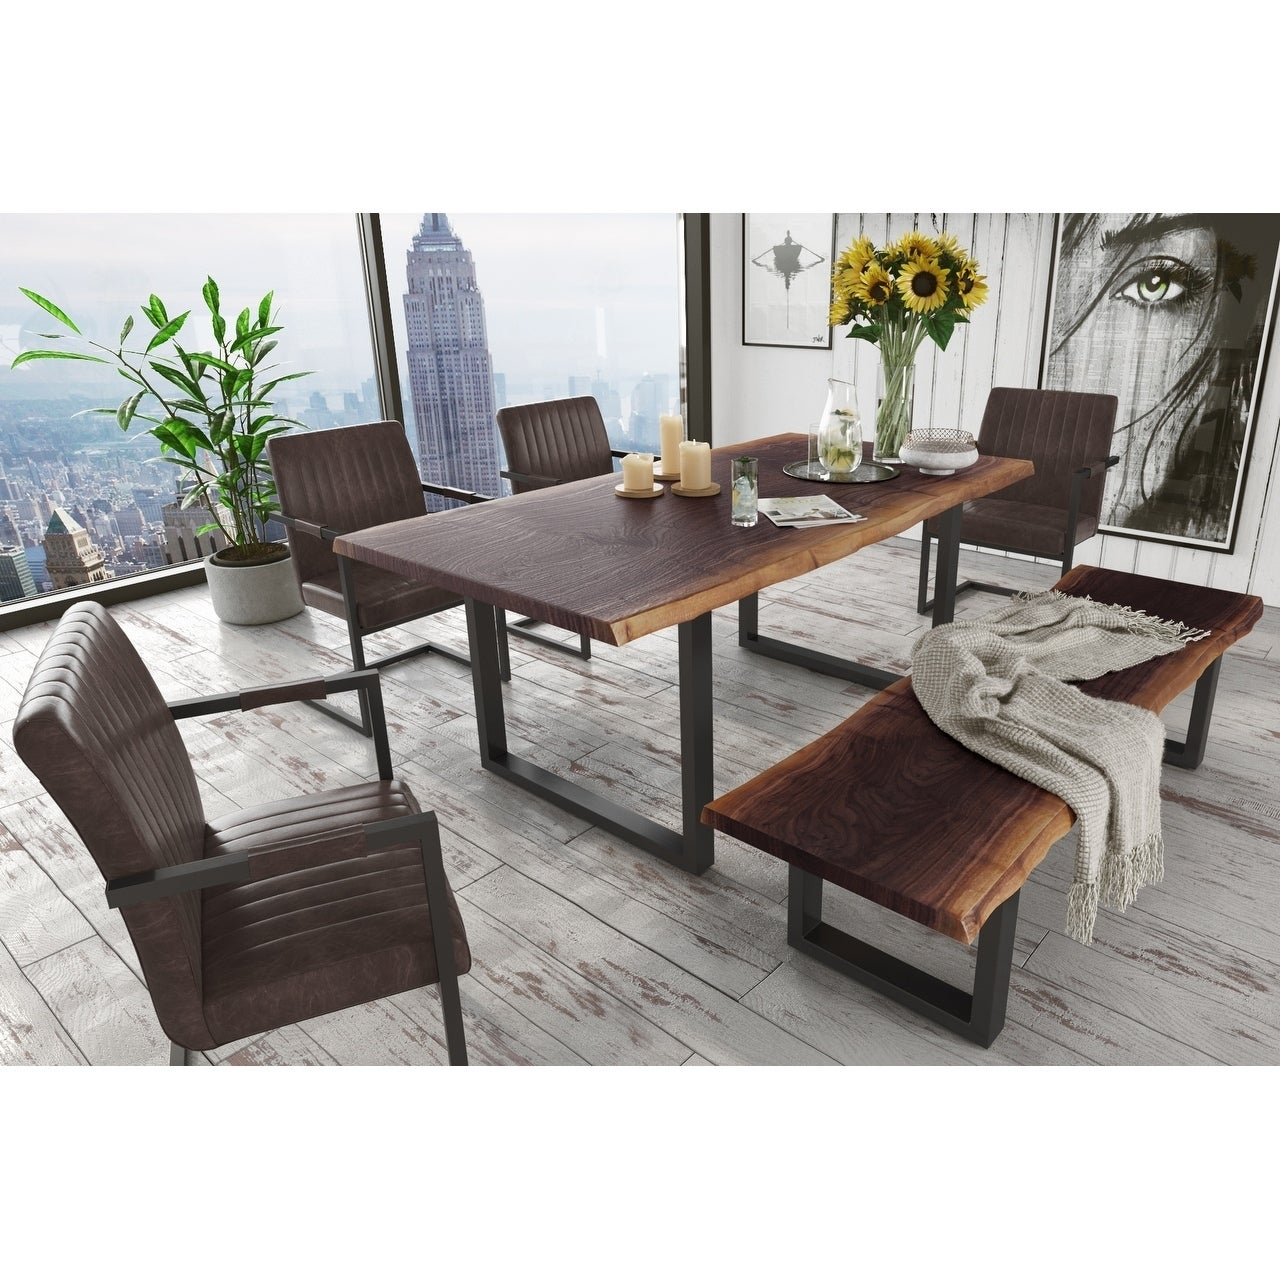 Picture of: Modrest Taylor Modern Live Edge Wood Dining Table Black On Sale Overstock 25558655